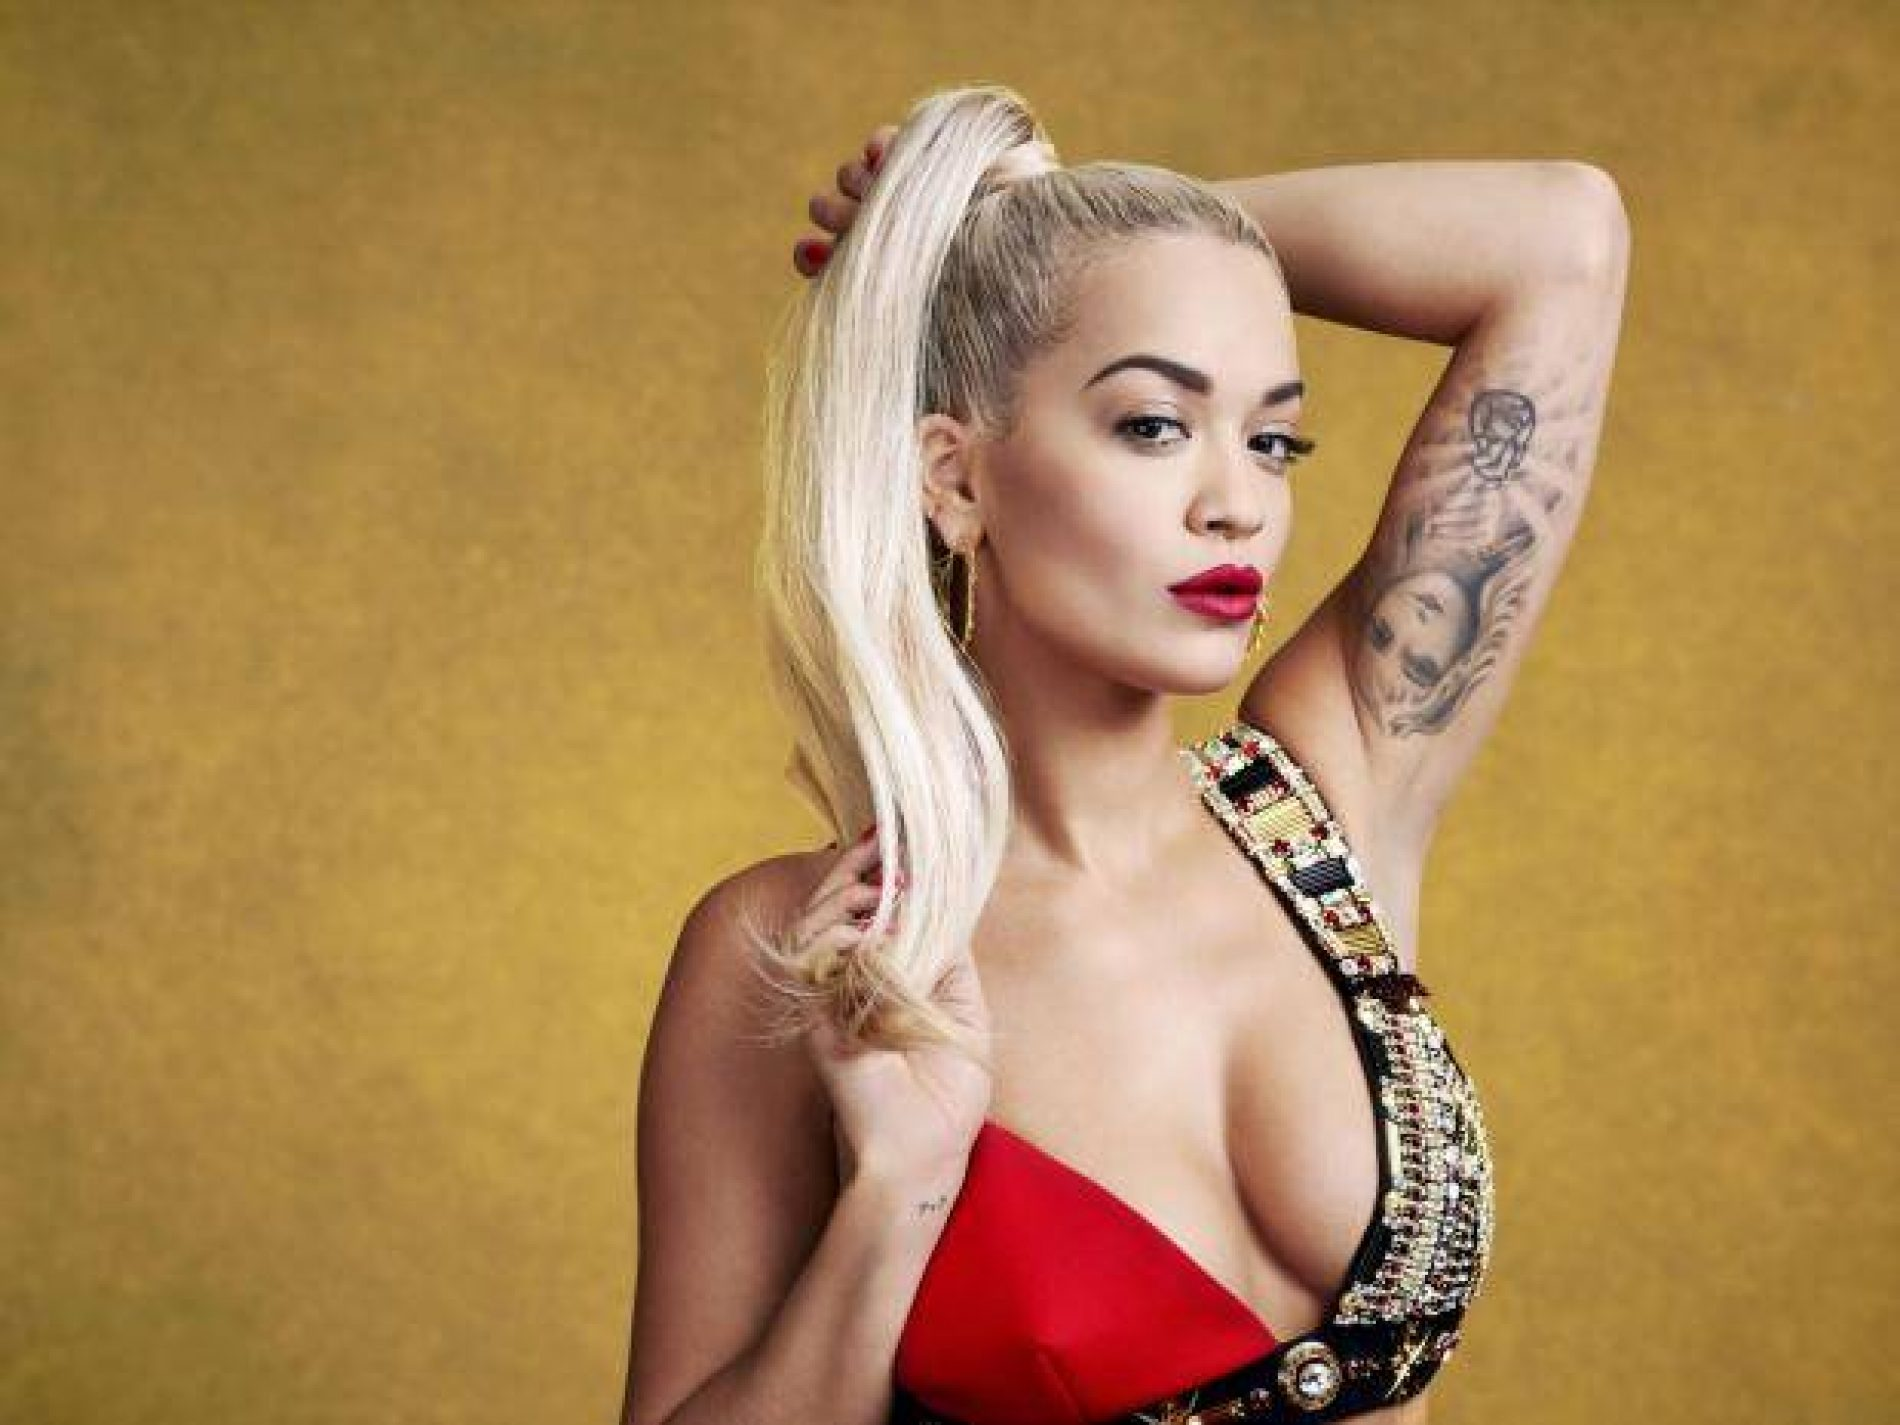 Rita Ora comes out as bisexual in her apology over her new song, 'Girls'